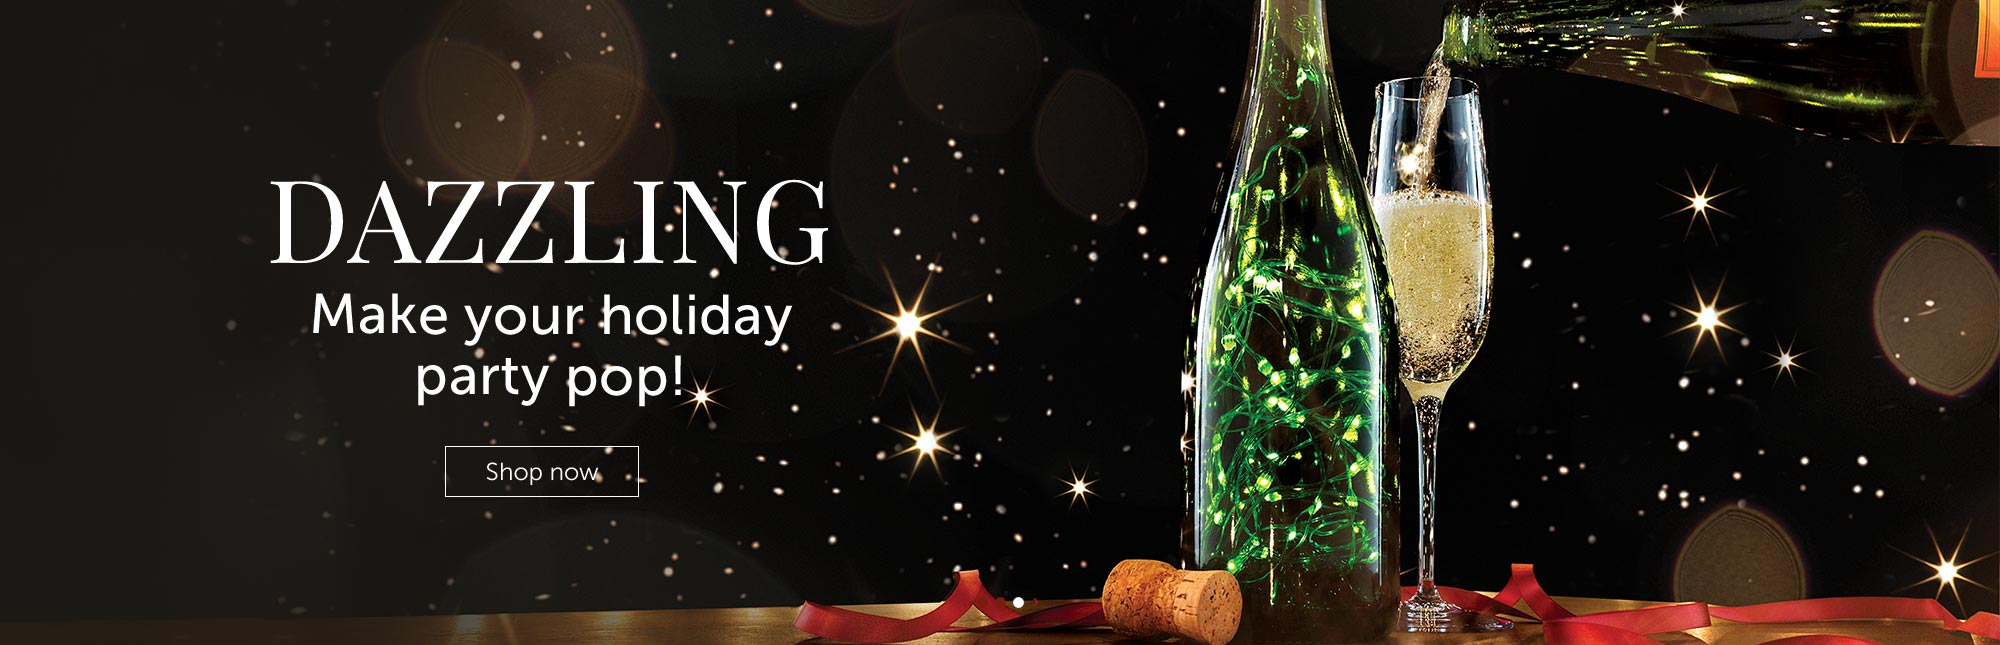 complete holiday champagne sparkling guide